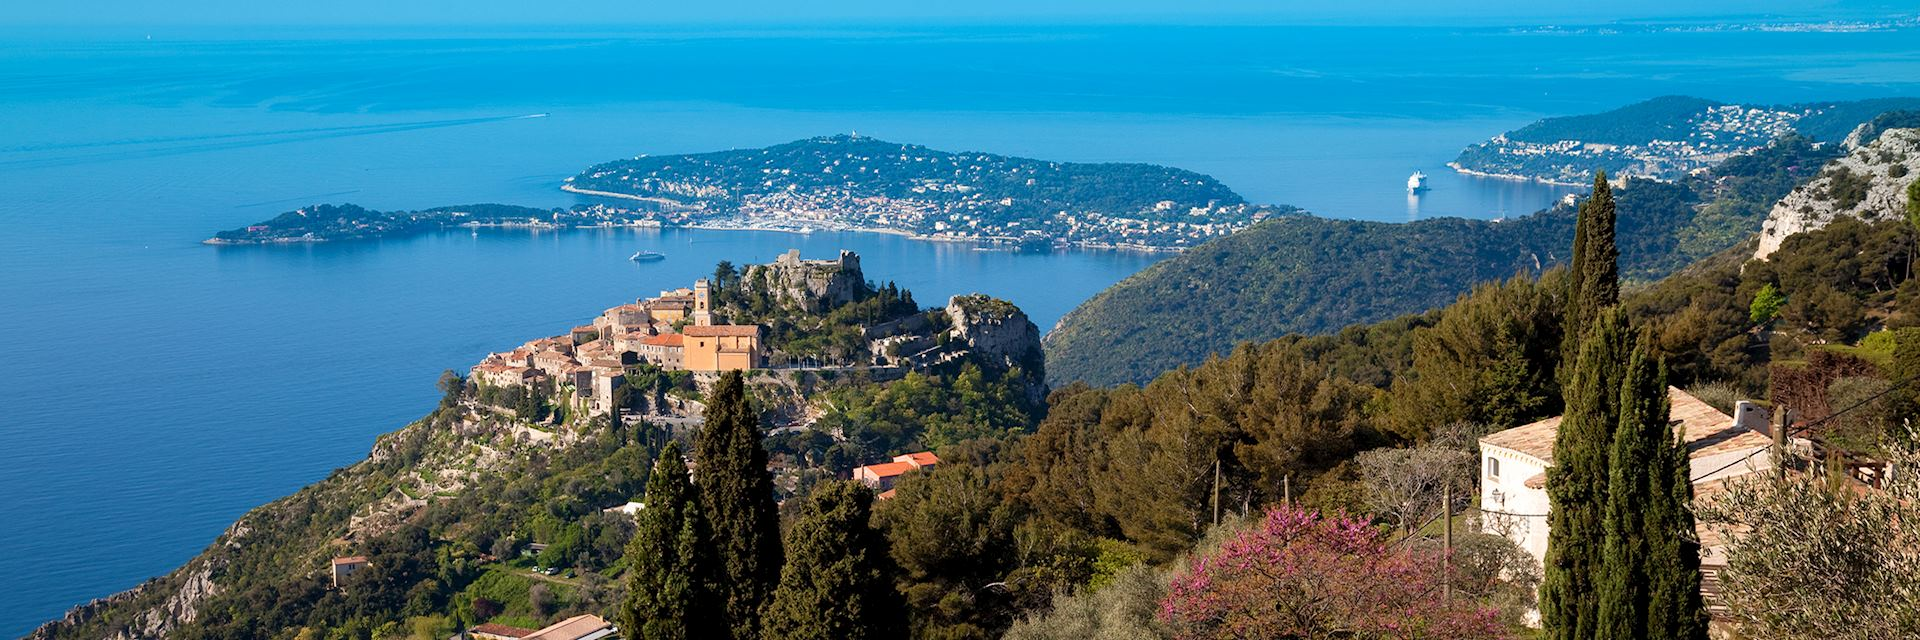 Eze Village and Saint Jean Cap Ferrat, France